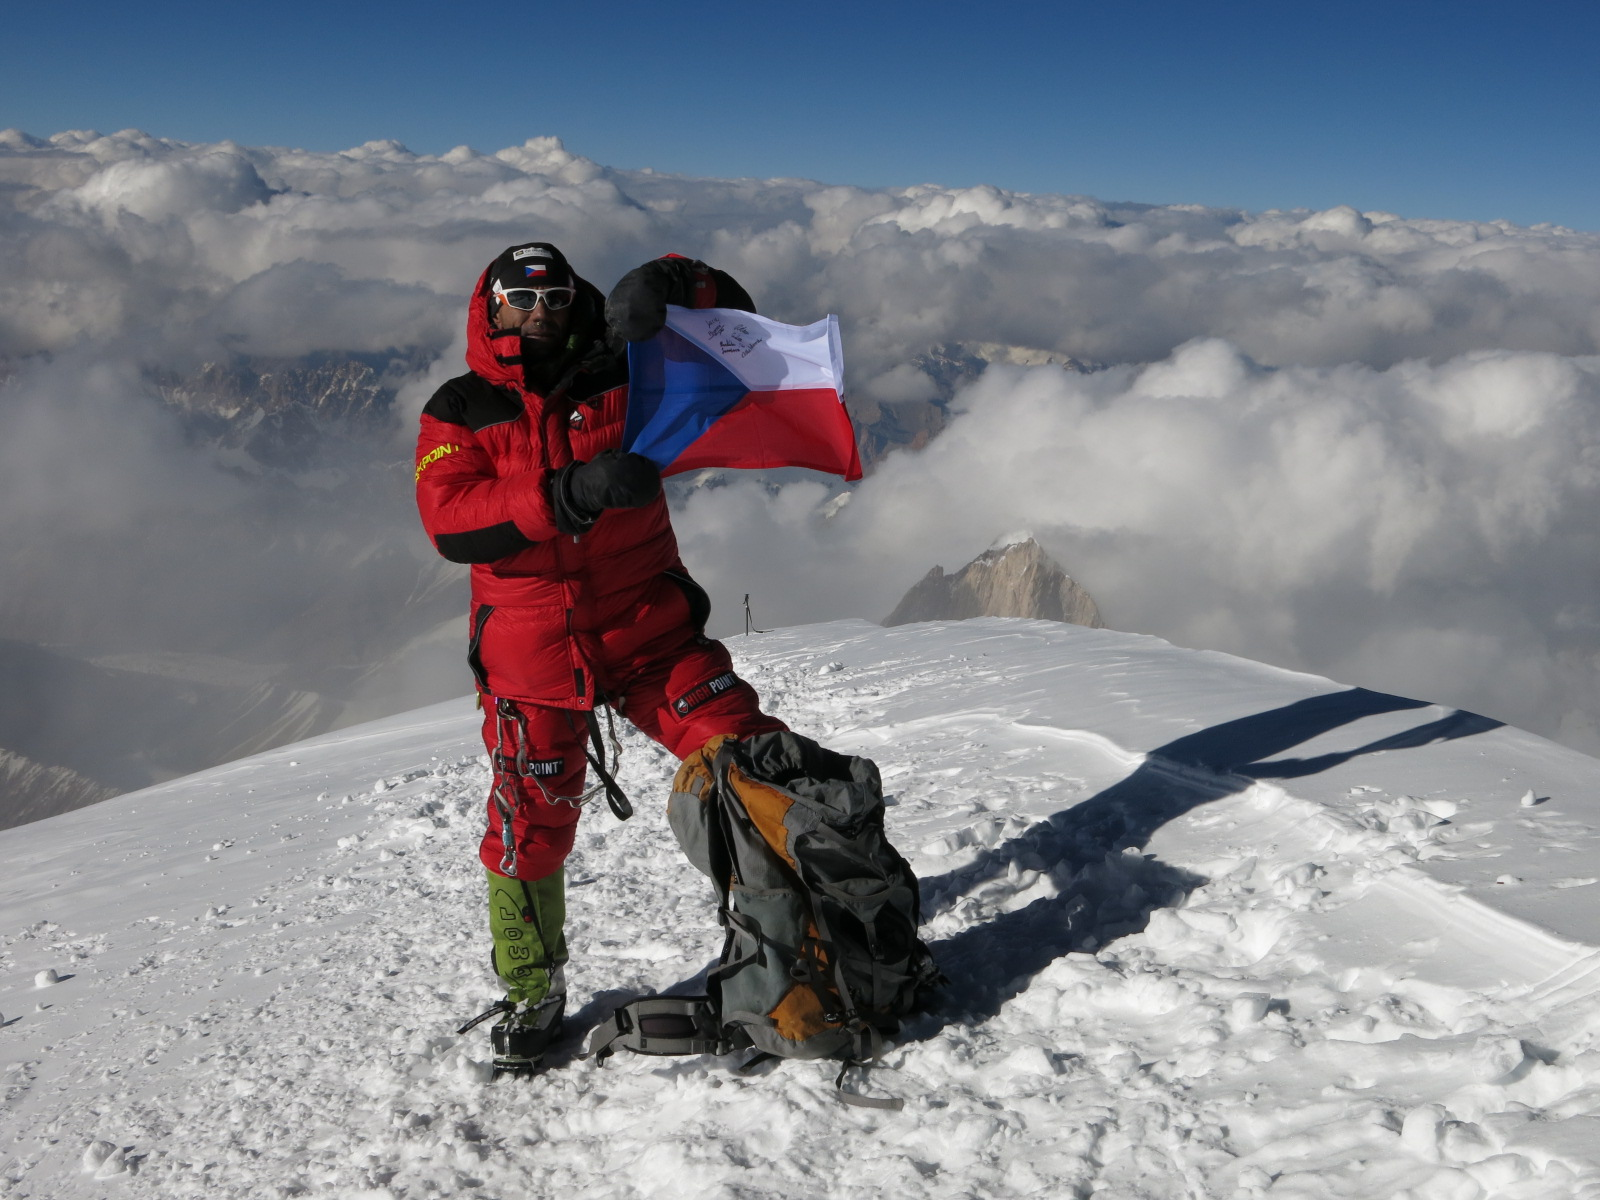 Radek Jaros earned the Crown of the Himalaya by making the summit of K2. Photo from Caters News Agency used by permission